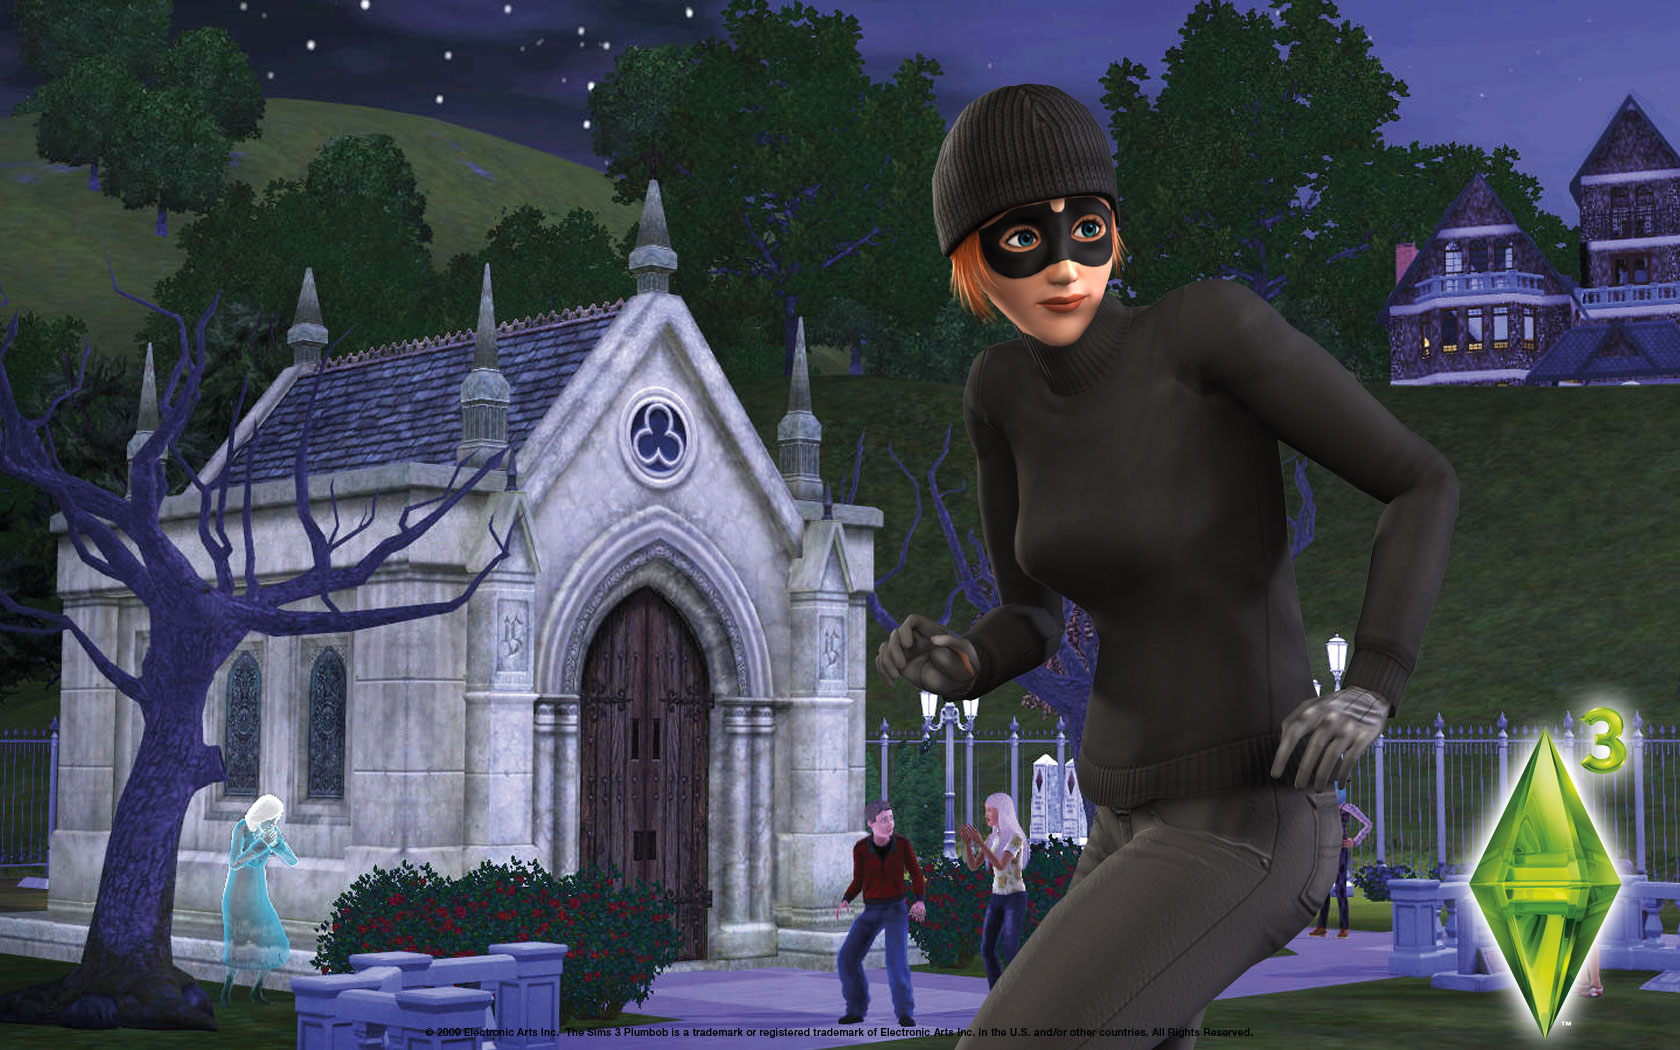 The sims 3 wallpaper   The Sims 3 Late Night Wallpaper 24436671 1680x1050